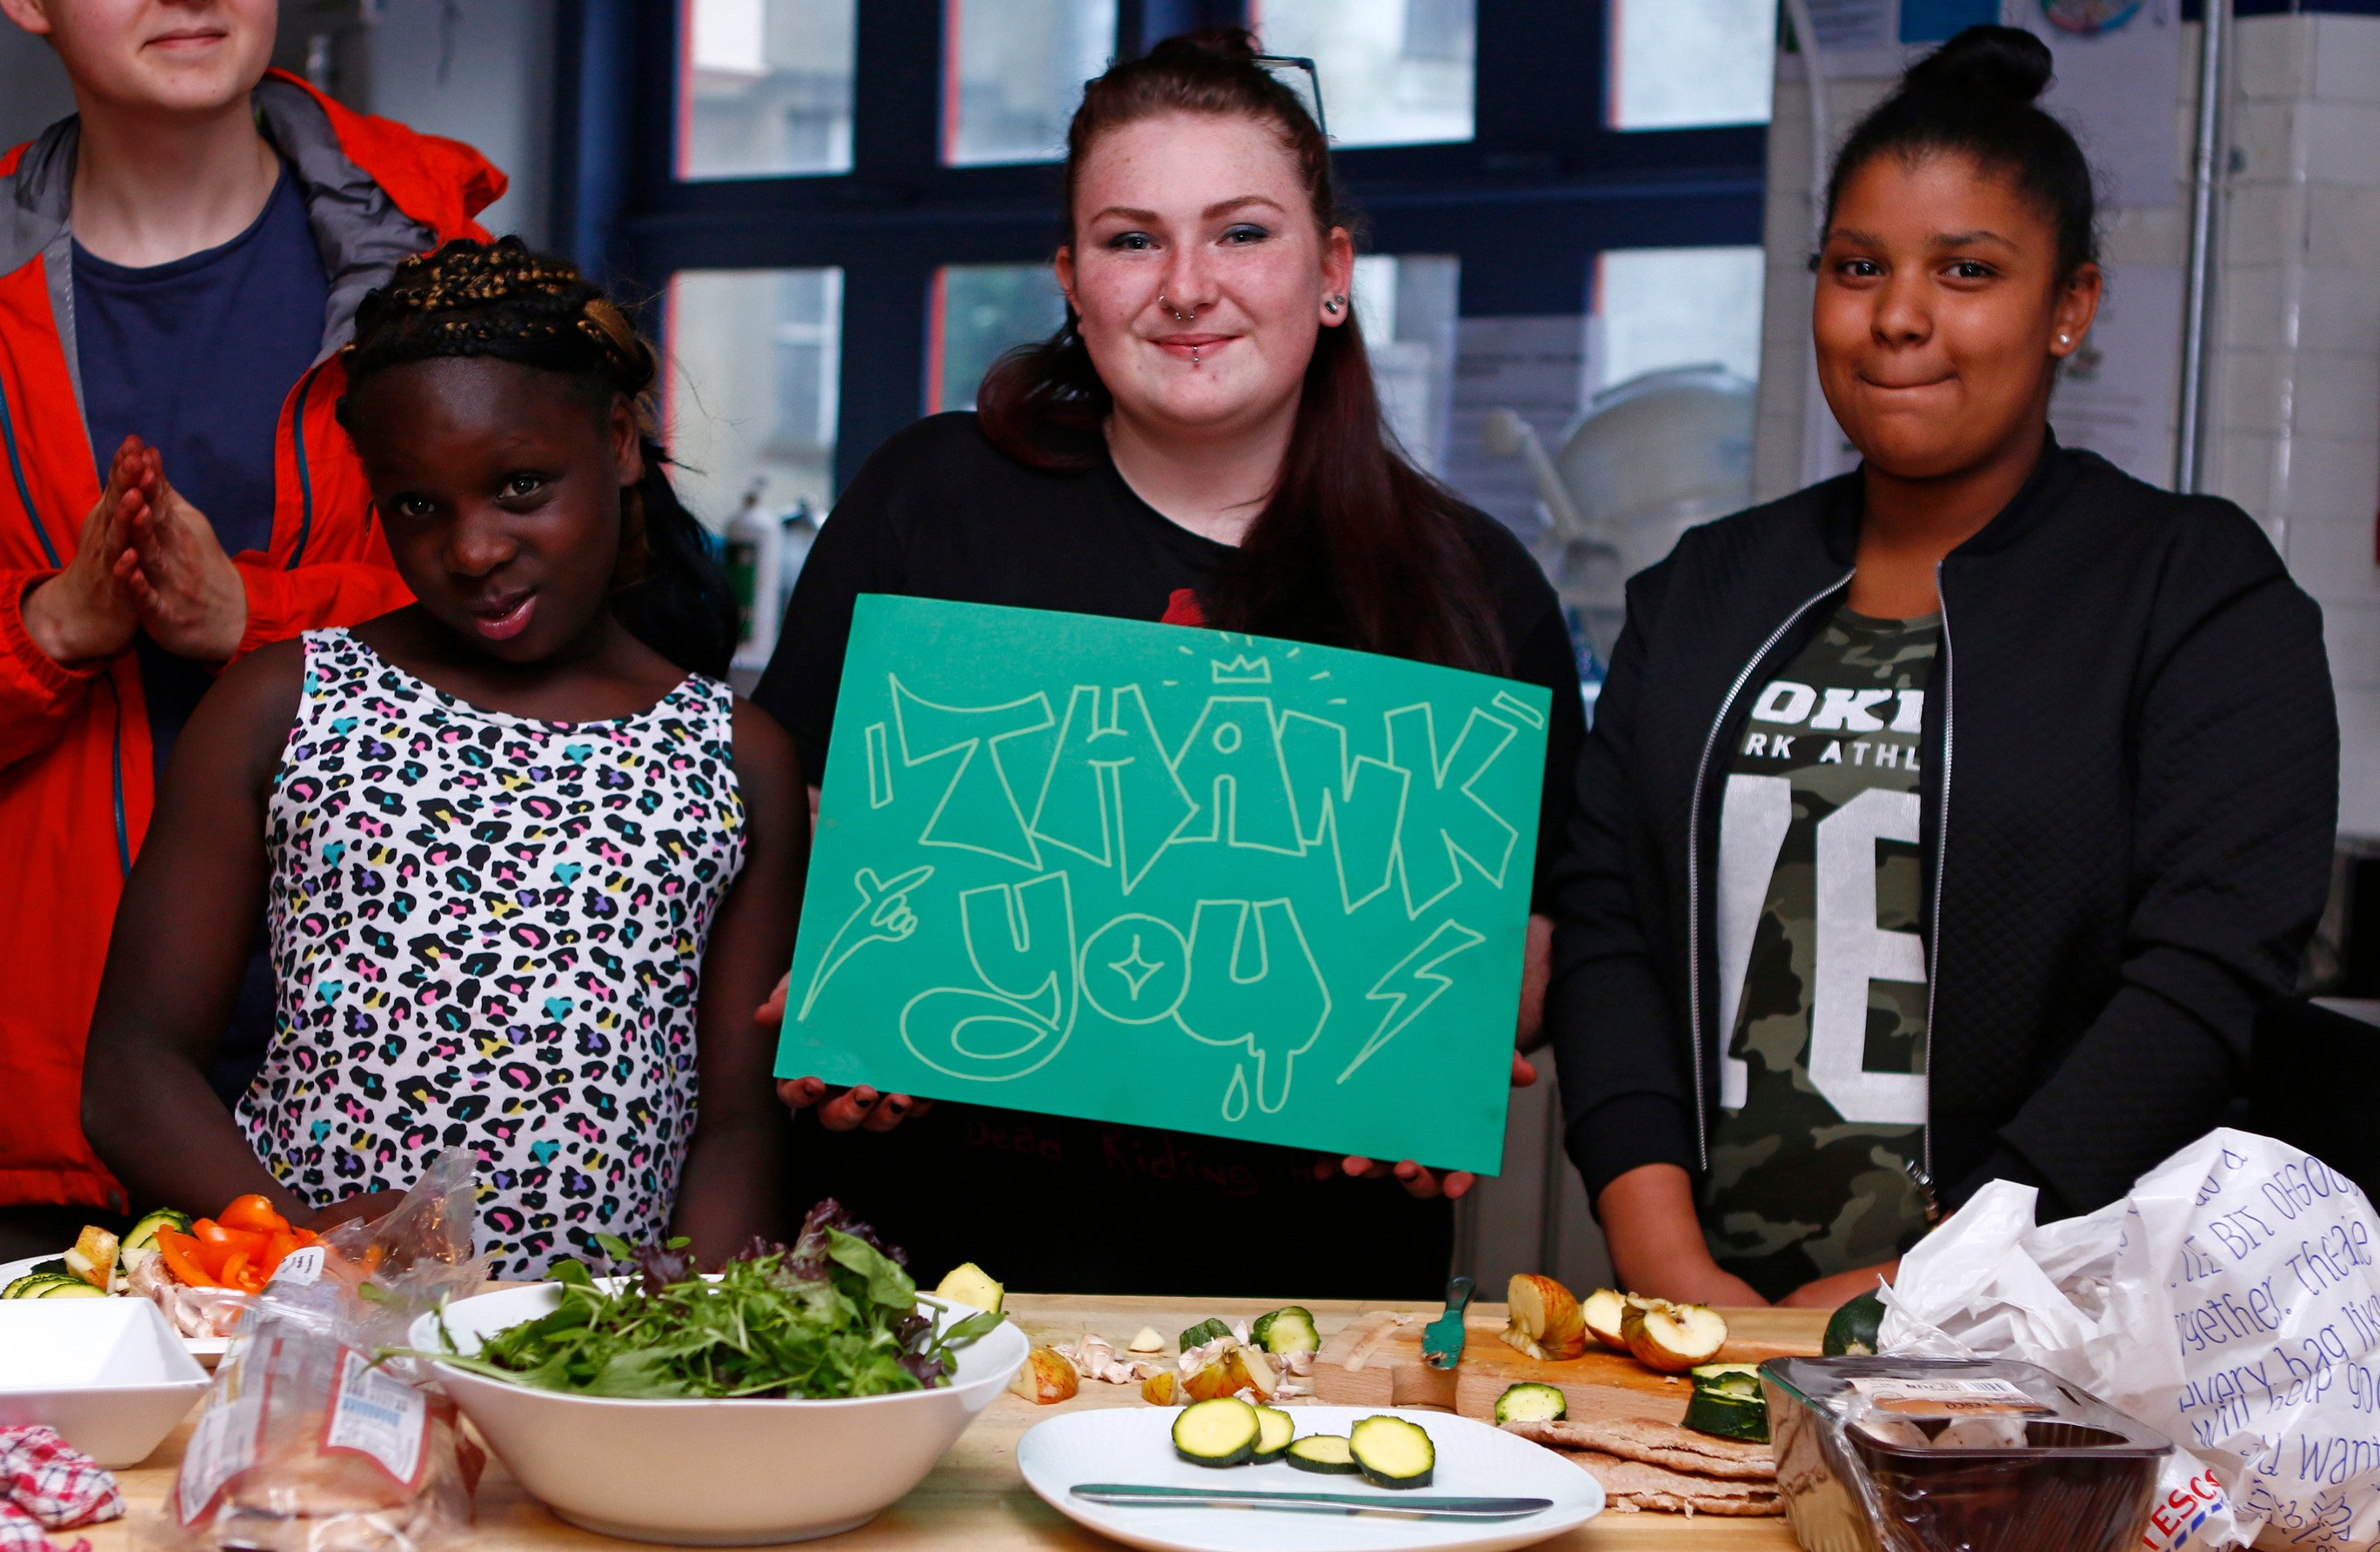 Three young women standing in a line in front of some food. One is holding up a Thank You sign